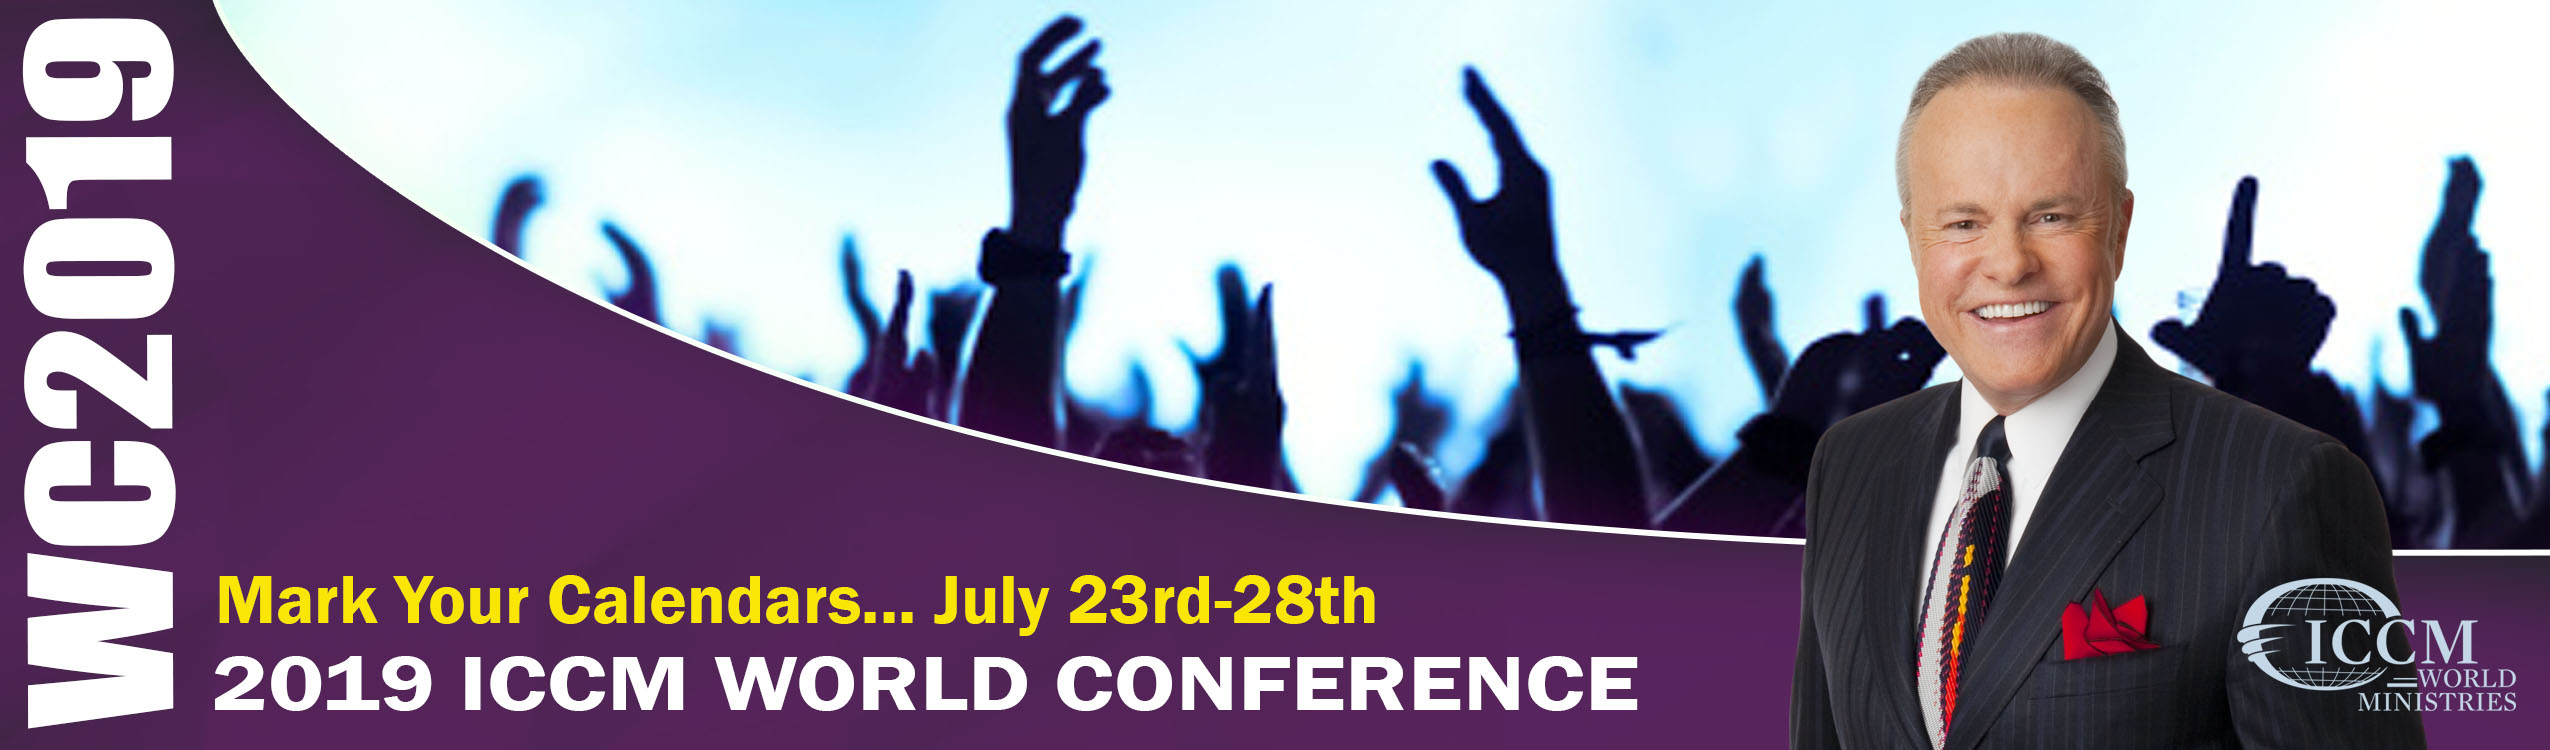 2019 ICCM World Conference information.